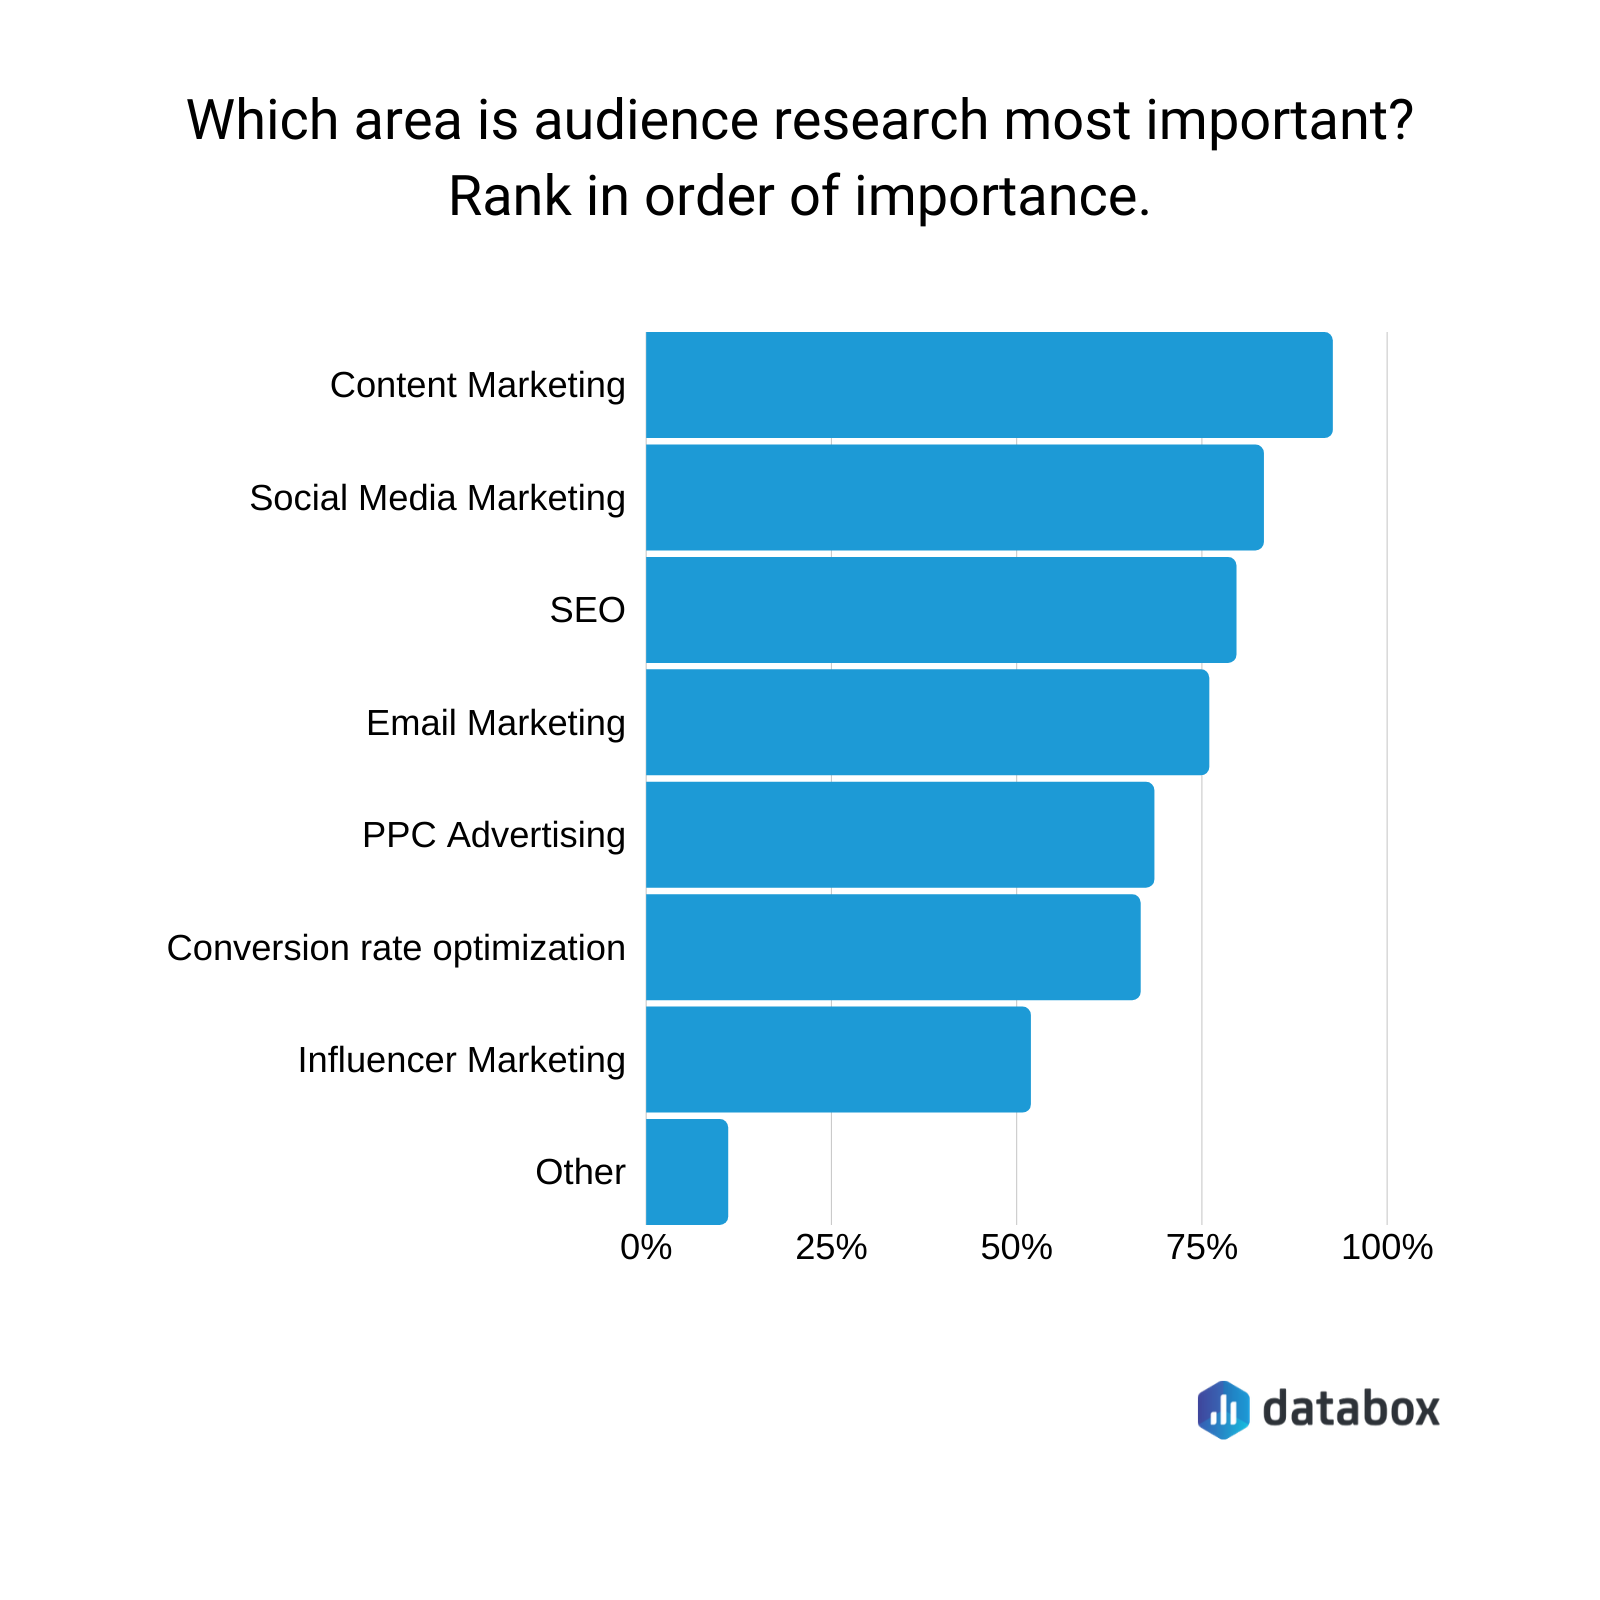 Ranking marketing approaches by audience research.